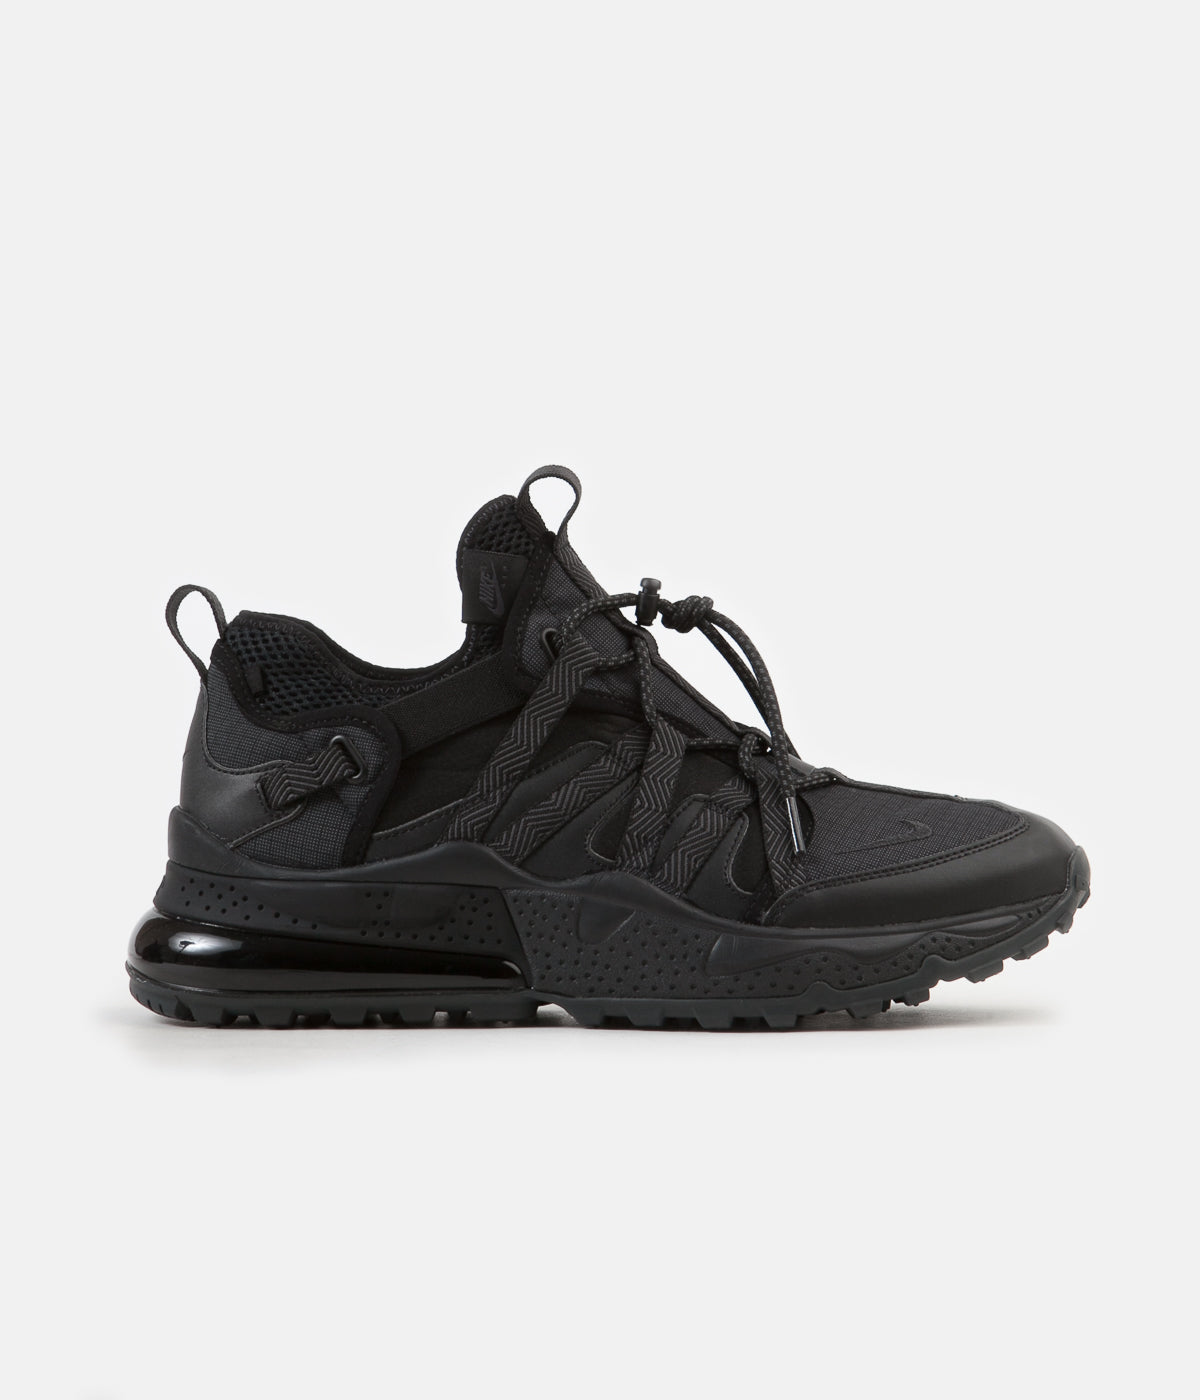 info for 6944b cdfae ... Nike Air Max 270 Bowfin Shoes - Black   Anthracite - Black ...